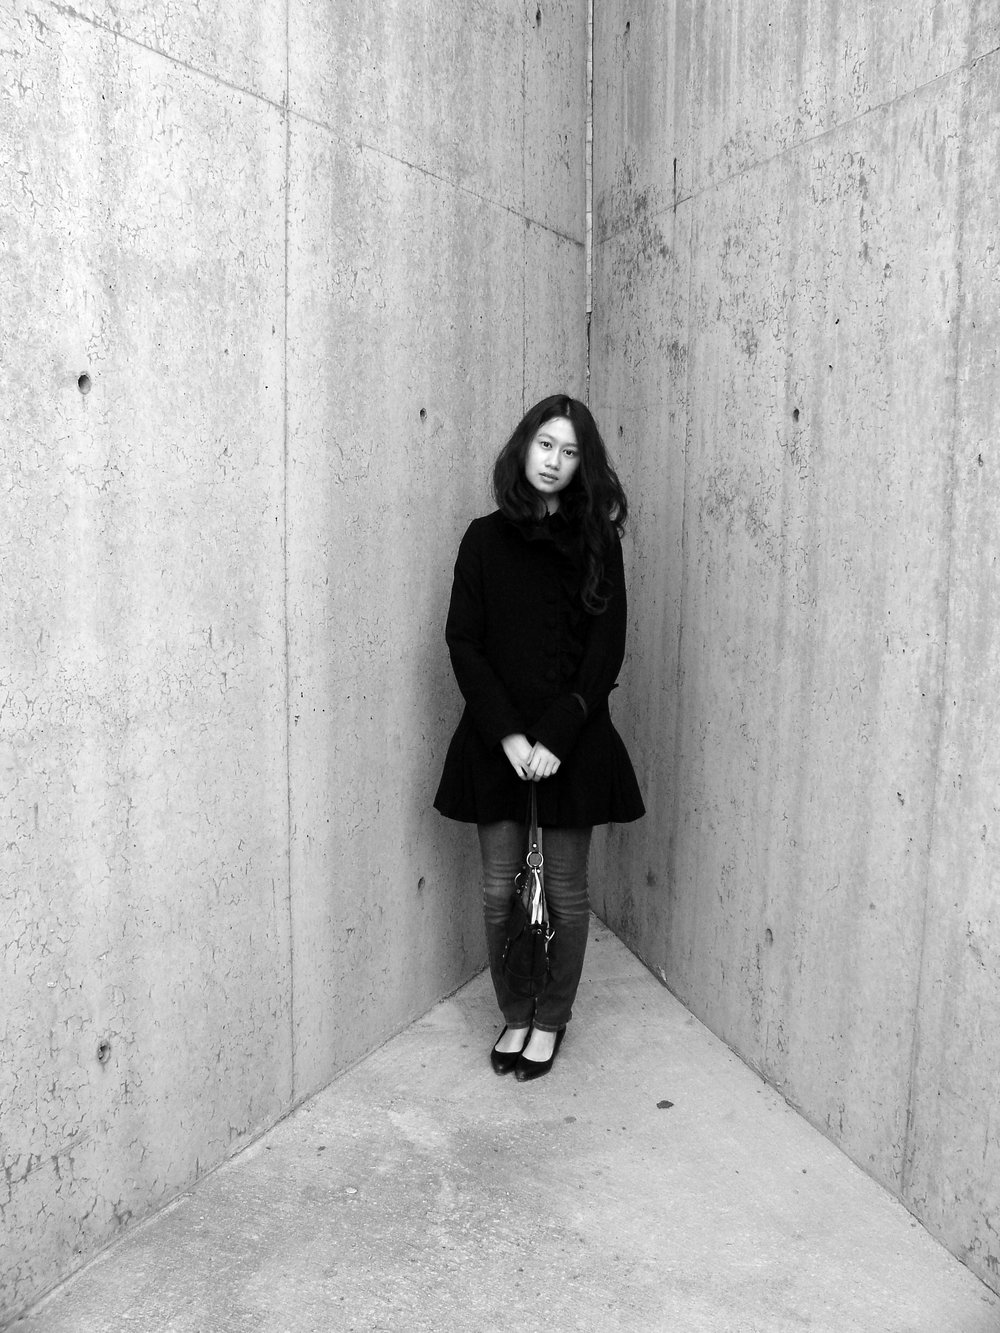 Like Irving Penn, corner portrait, Sarah-Linh at MoMA PS1, Long Island City, NY